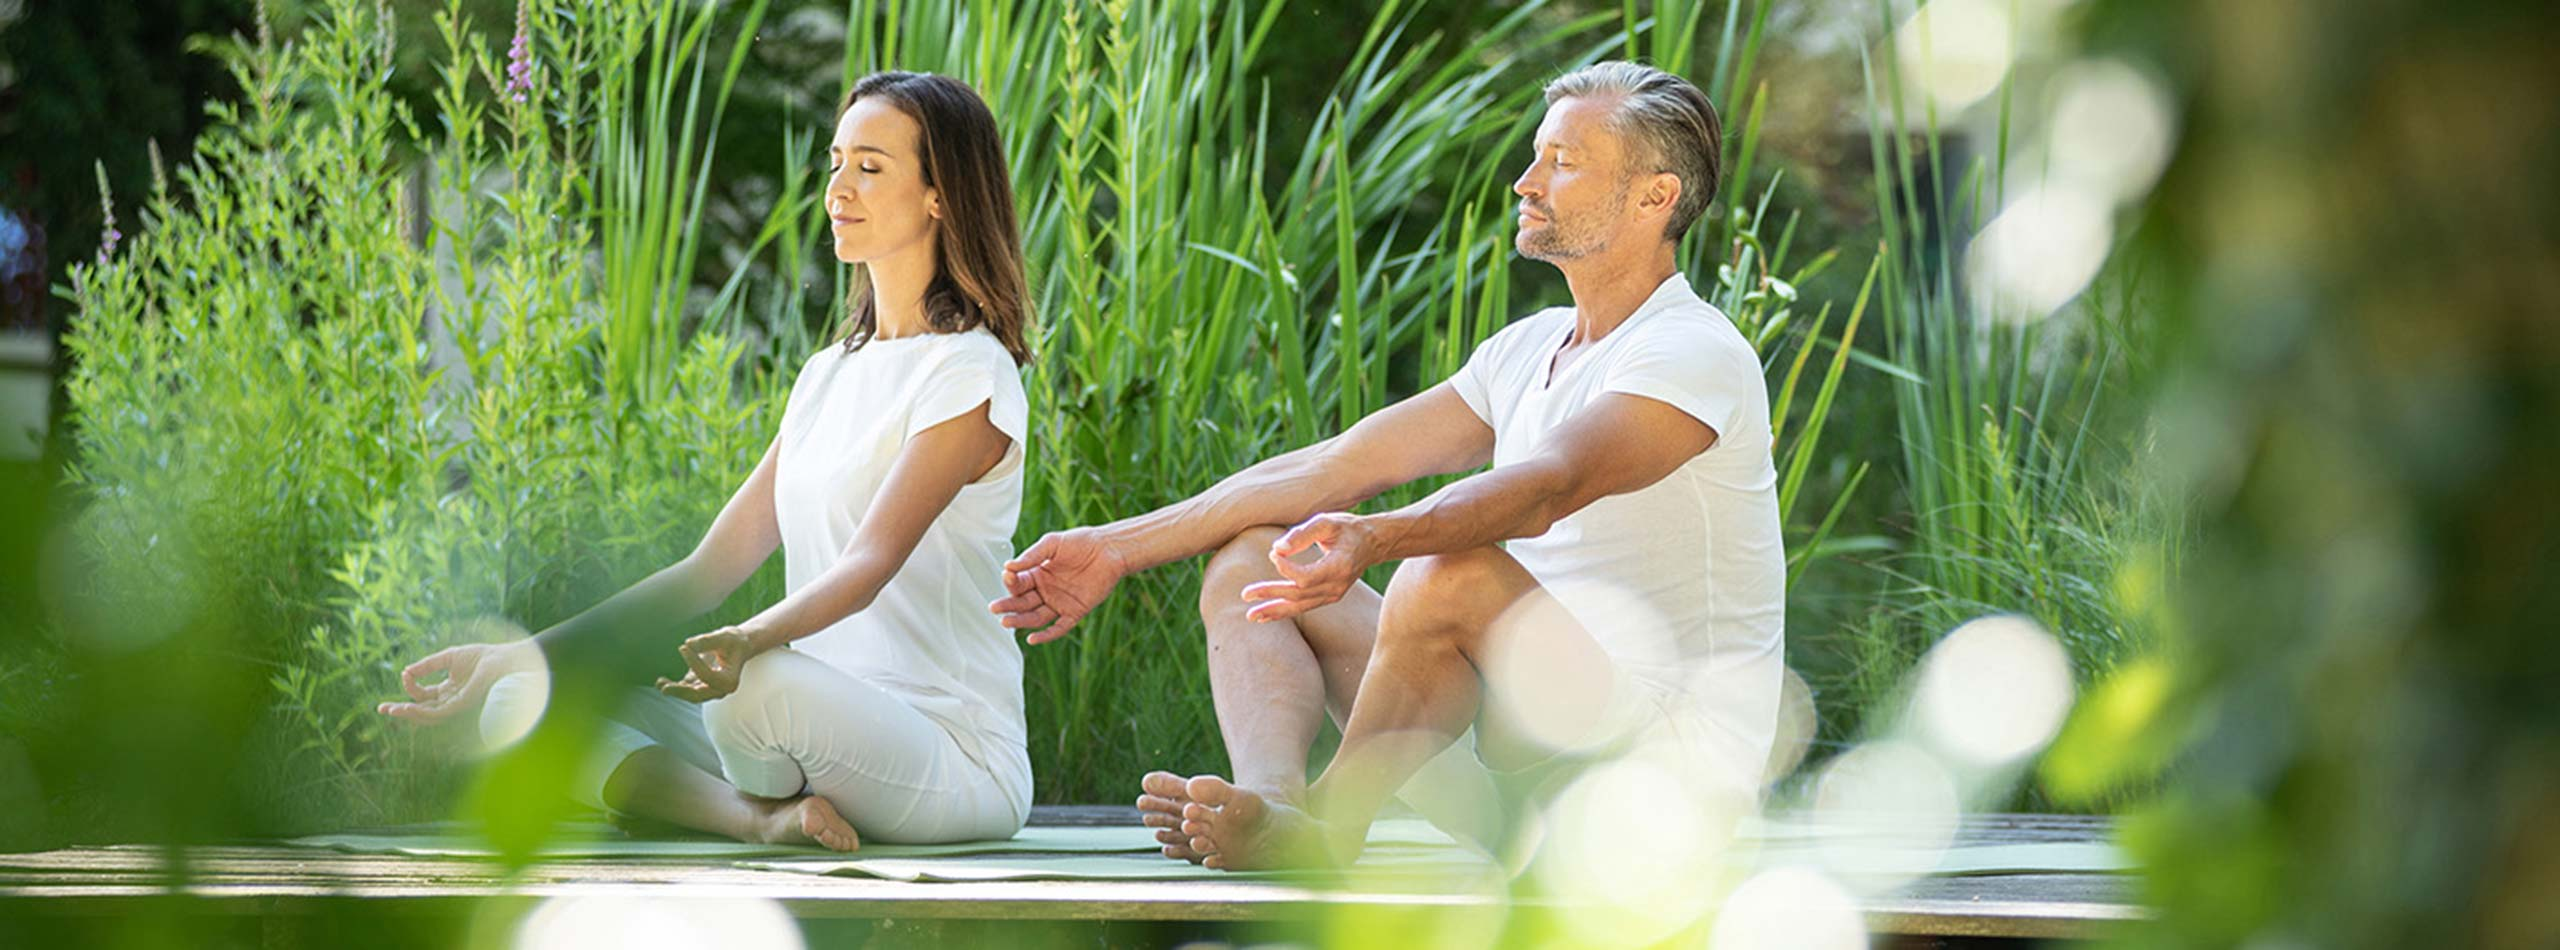 Exercise therapy | Park Igls Mayr Health Retreat and Medical Spa